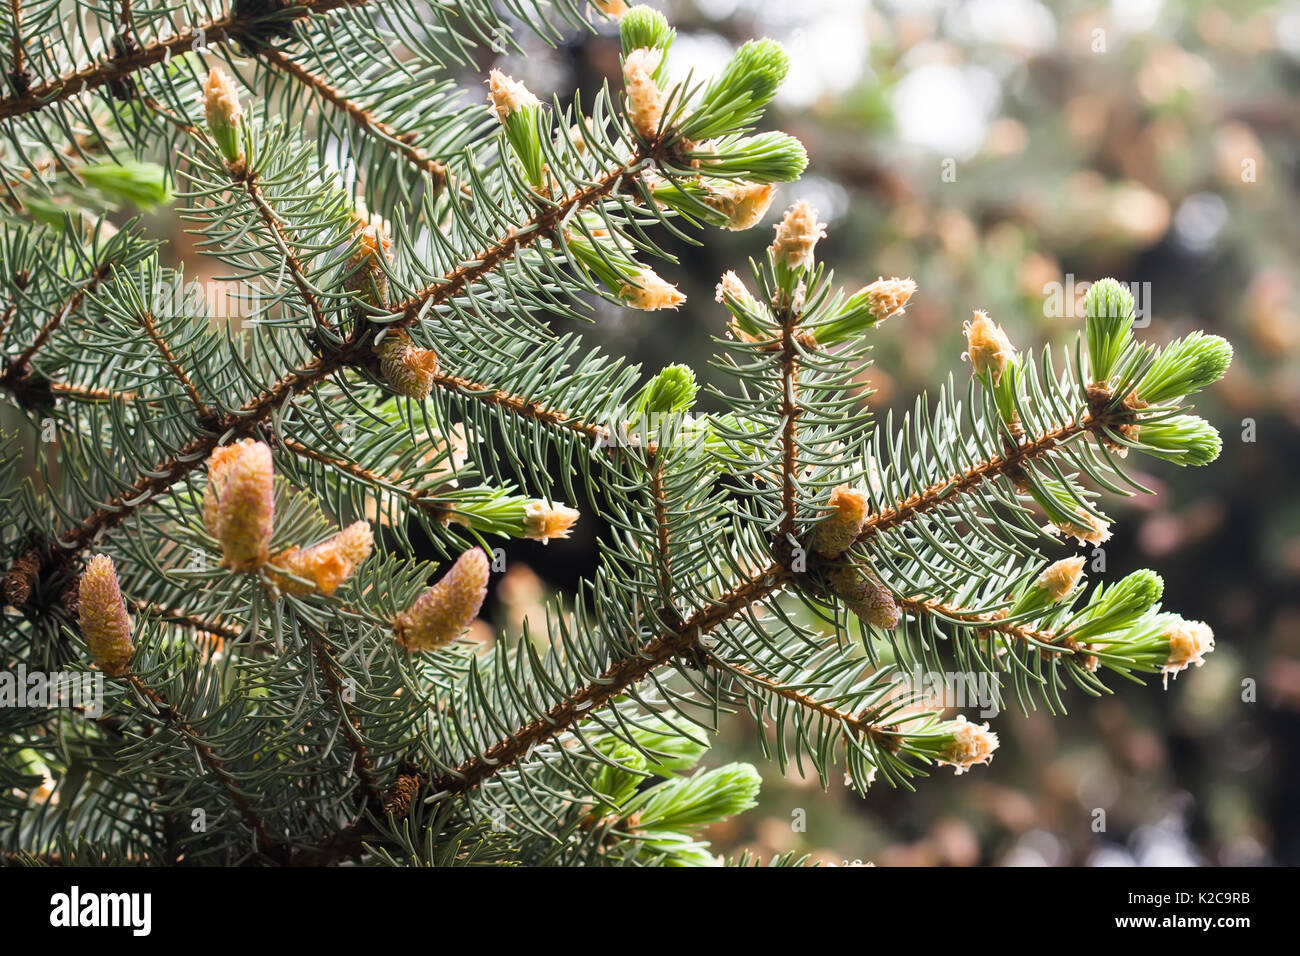 Norway Pine Stock Photos & Norway Pine Stock Images - Alamy Evergreen Branch